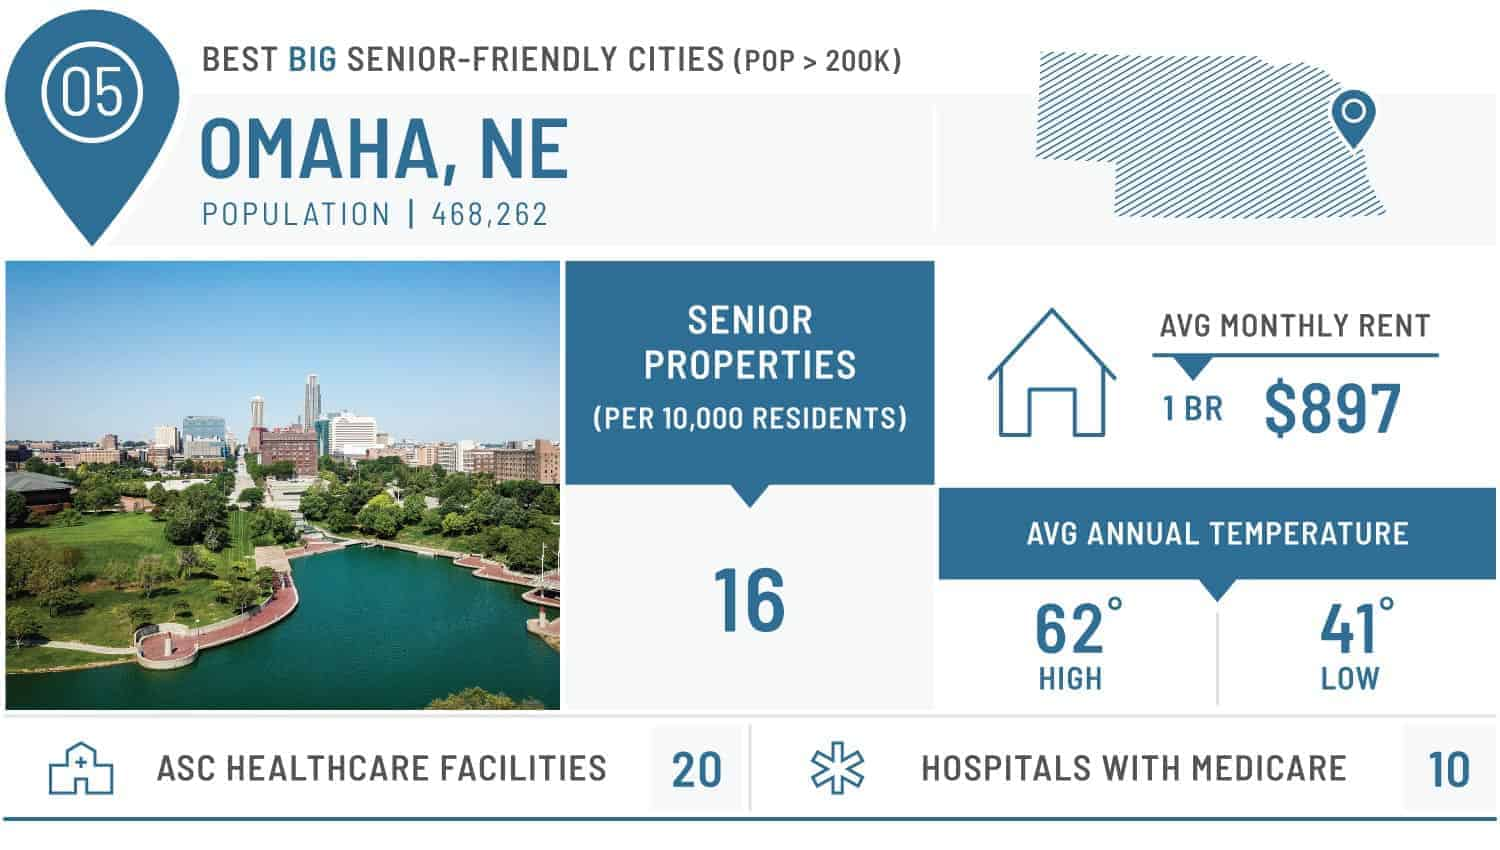 visual of the best large city for seniors - omaha